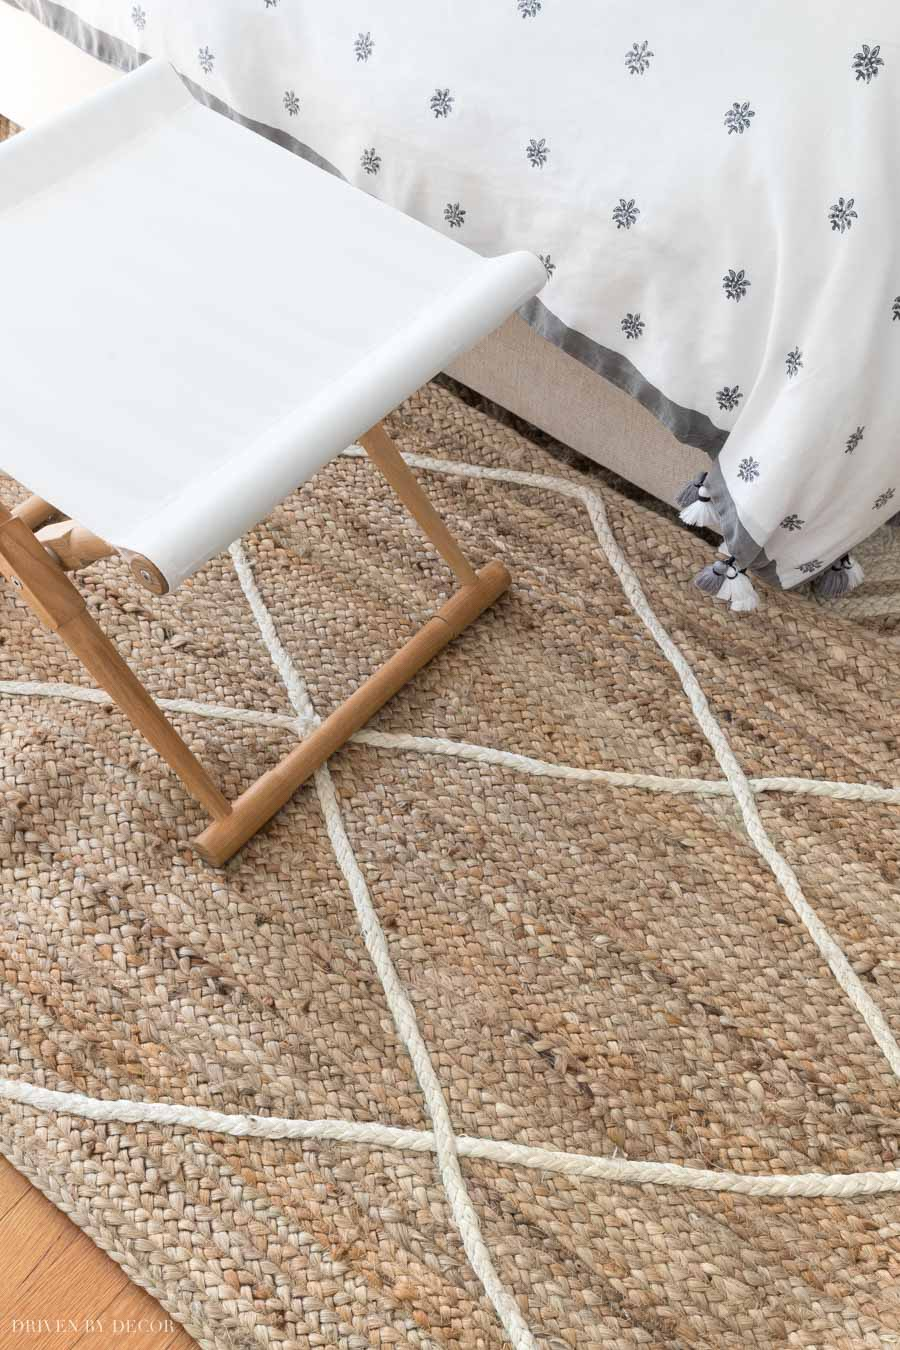 Such a great bedroom or living room jute rug - love the diamond pattern!